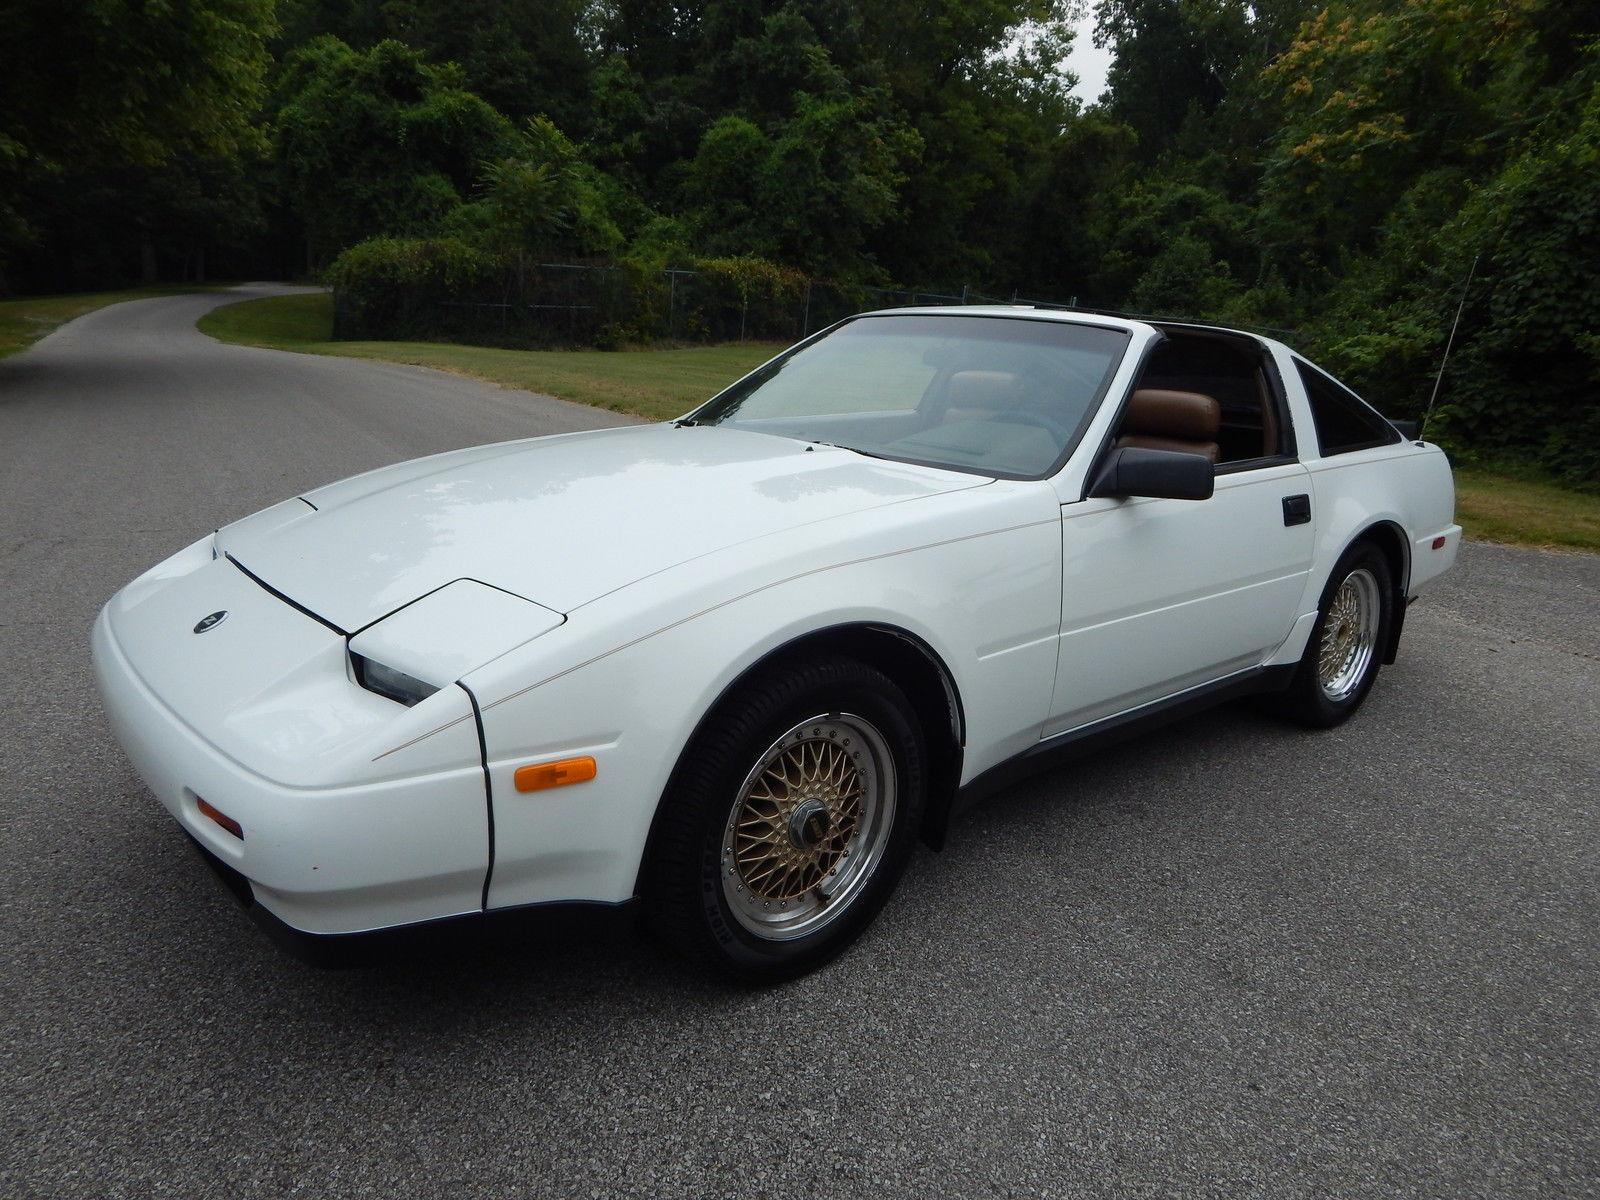 1987-nissan-300zx-hd-best-old-collector-car-bestoldcars-2